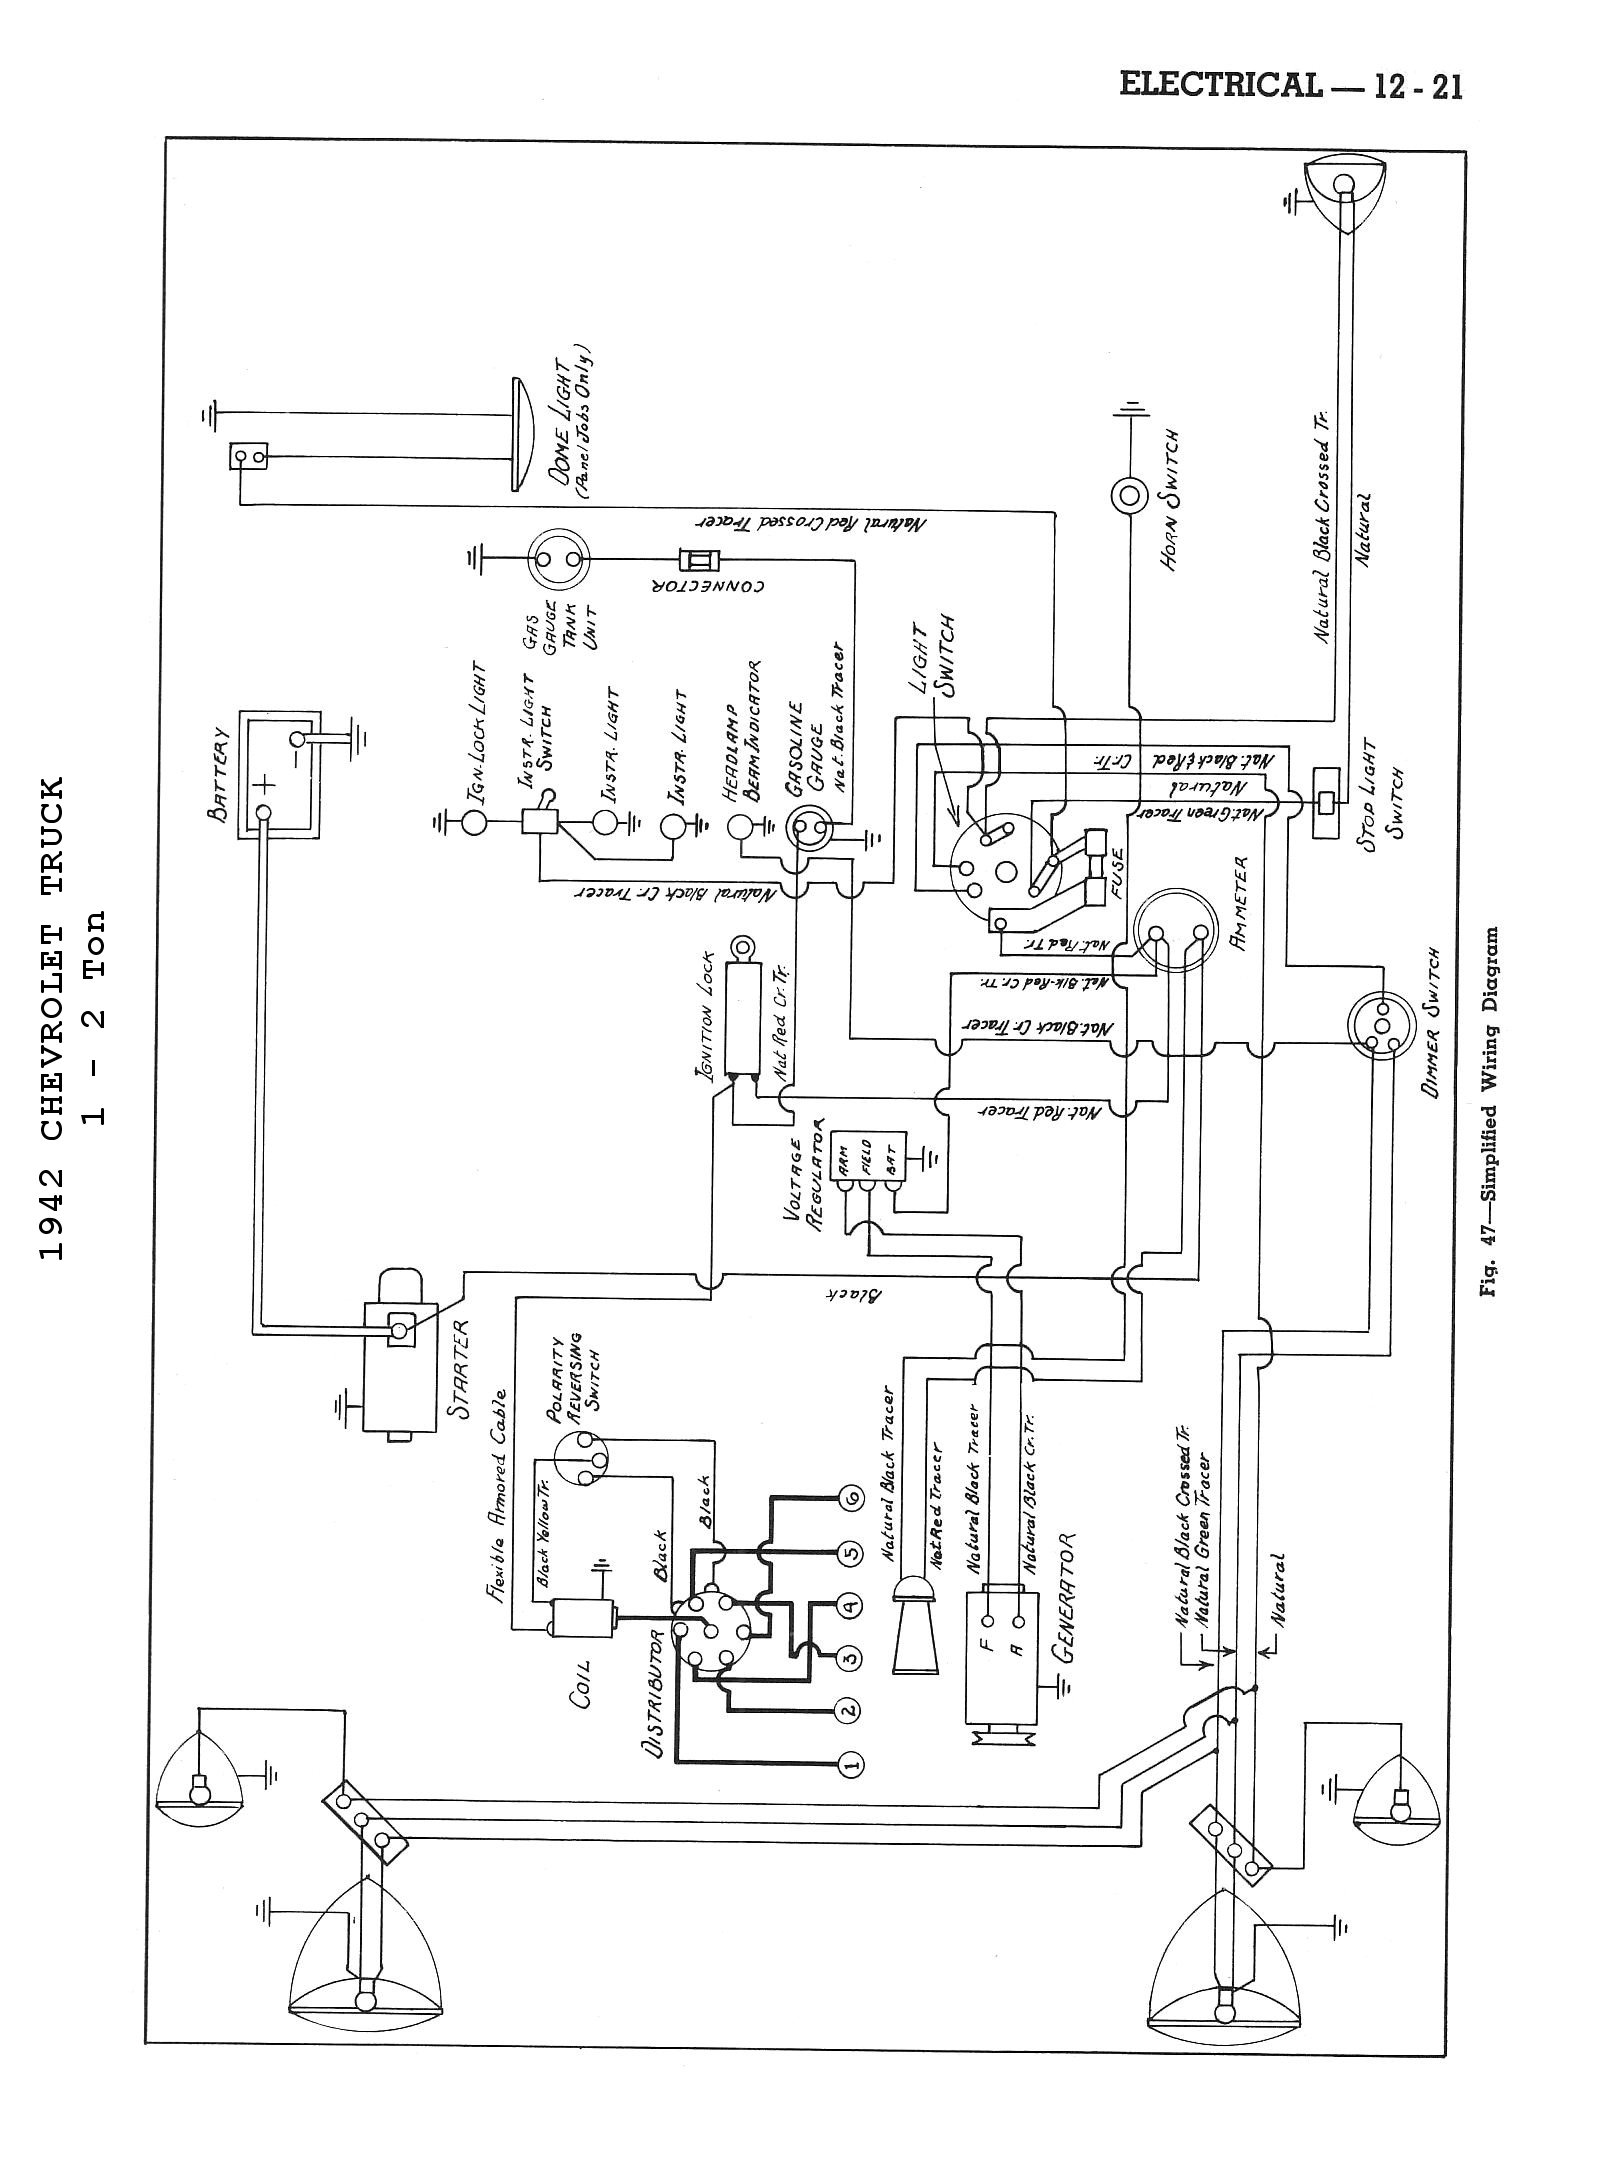 Chevy Wiring diagrams  Old Online Chevy Manuals